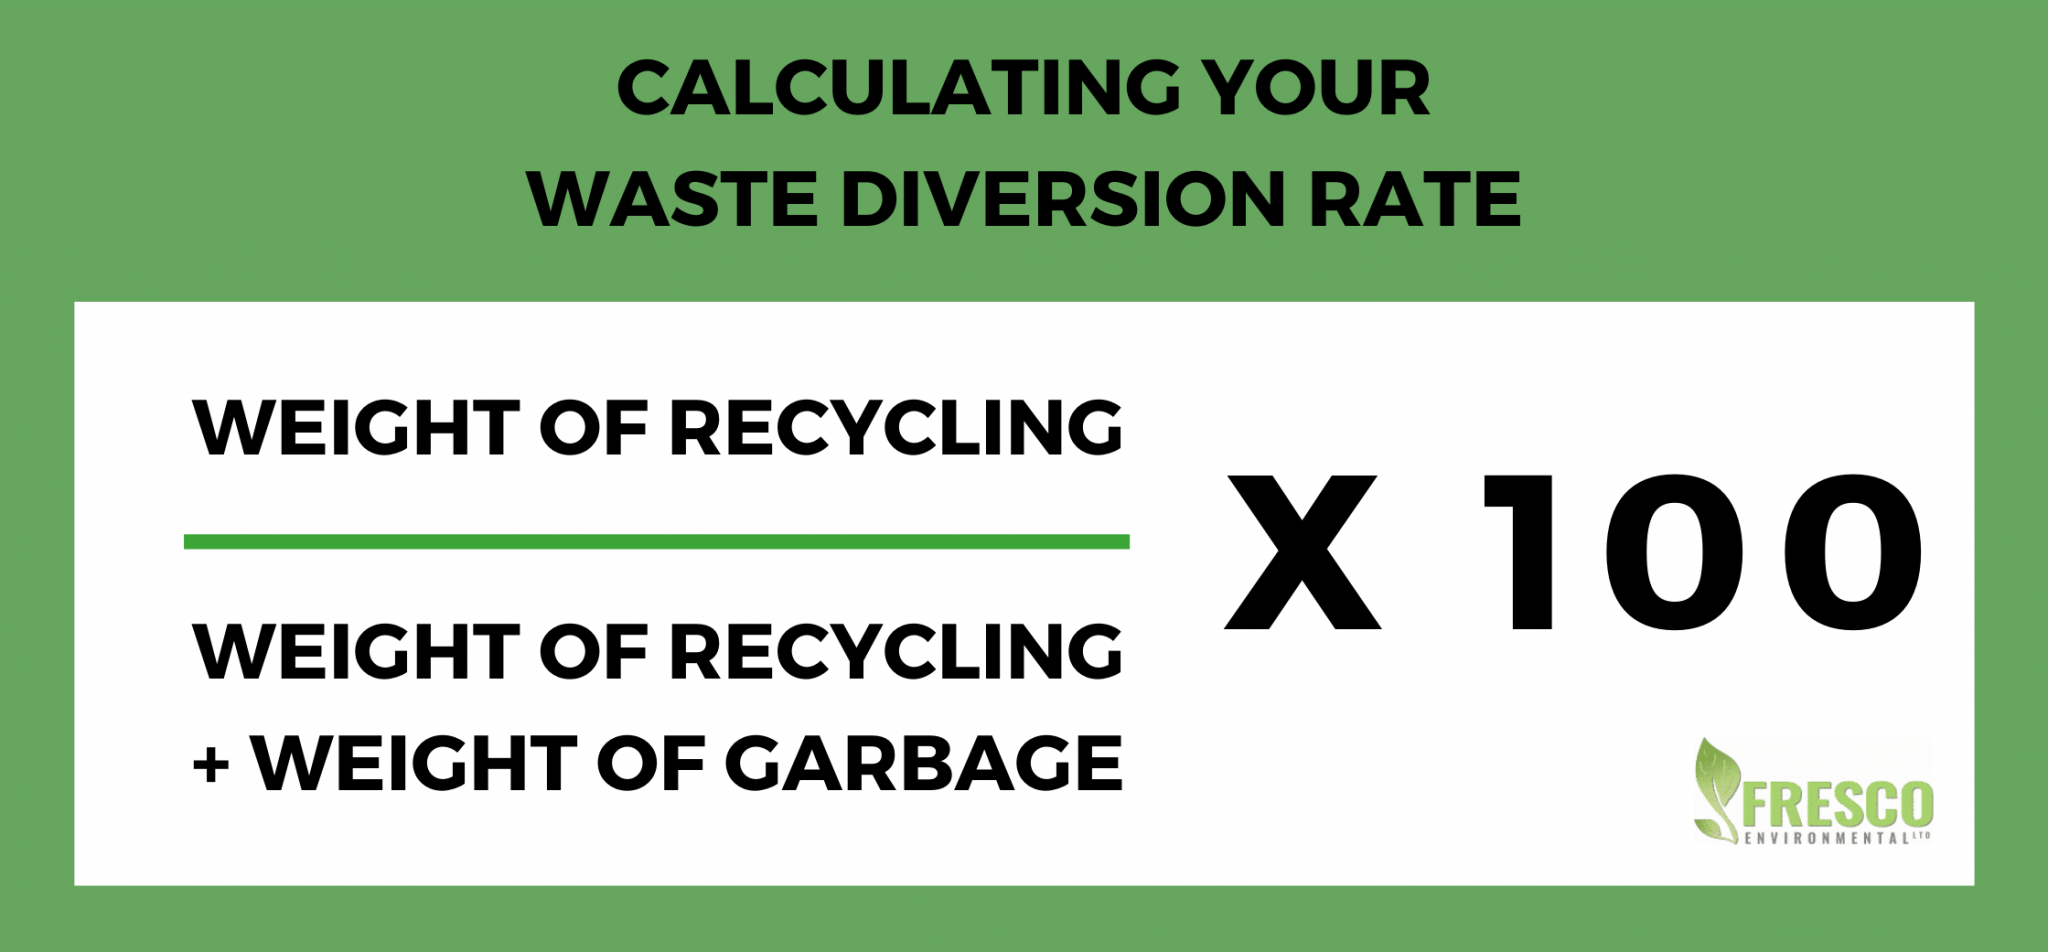 formula for calculating your Waste Diversion Rate